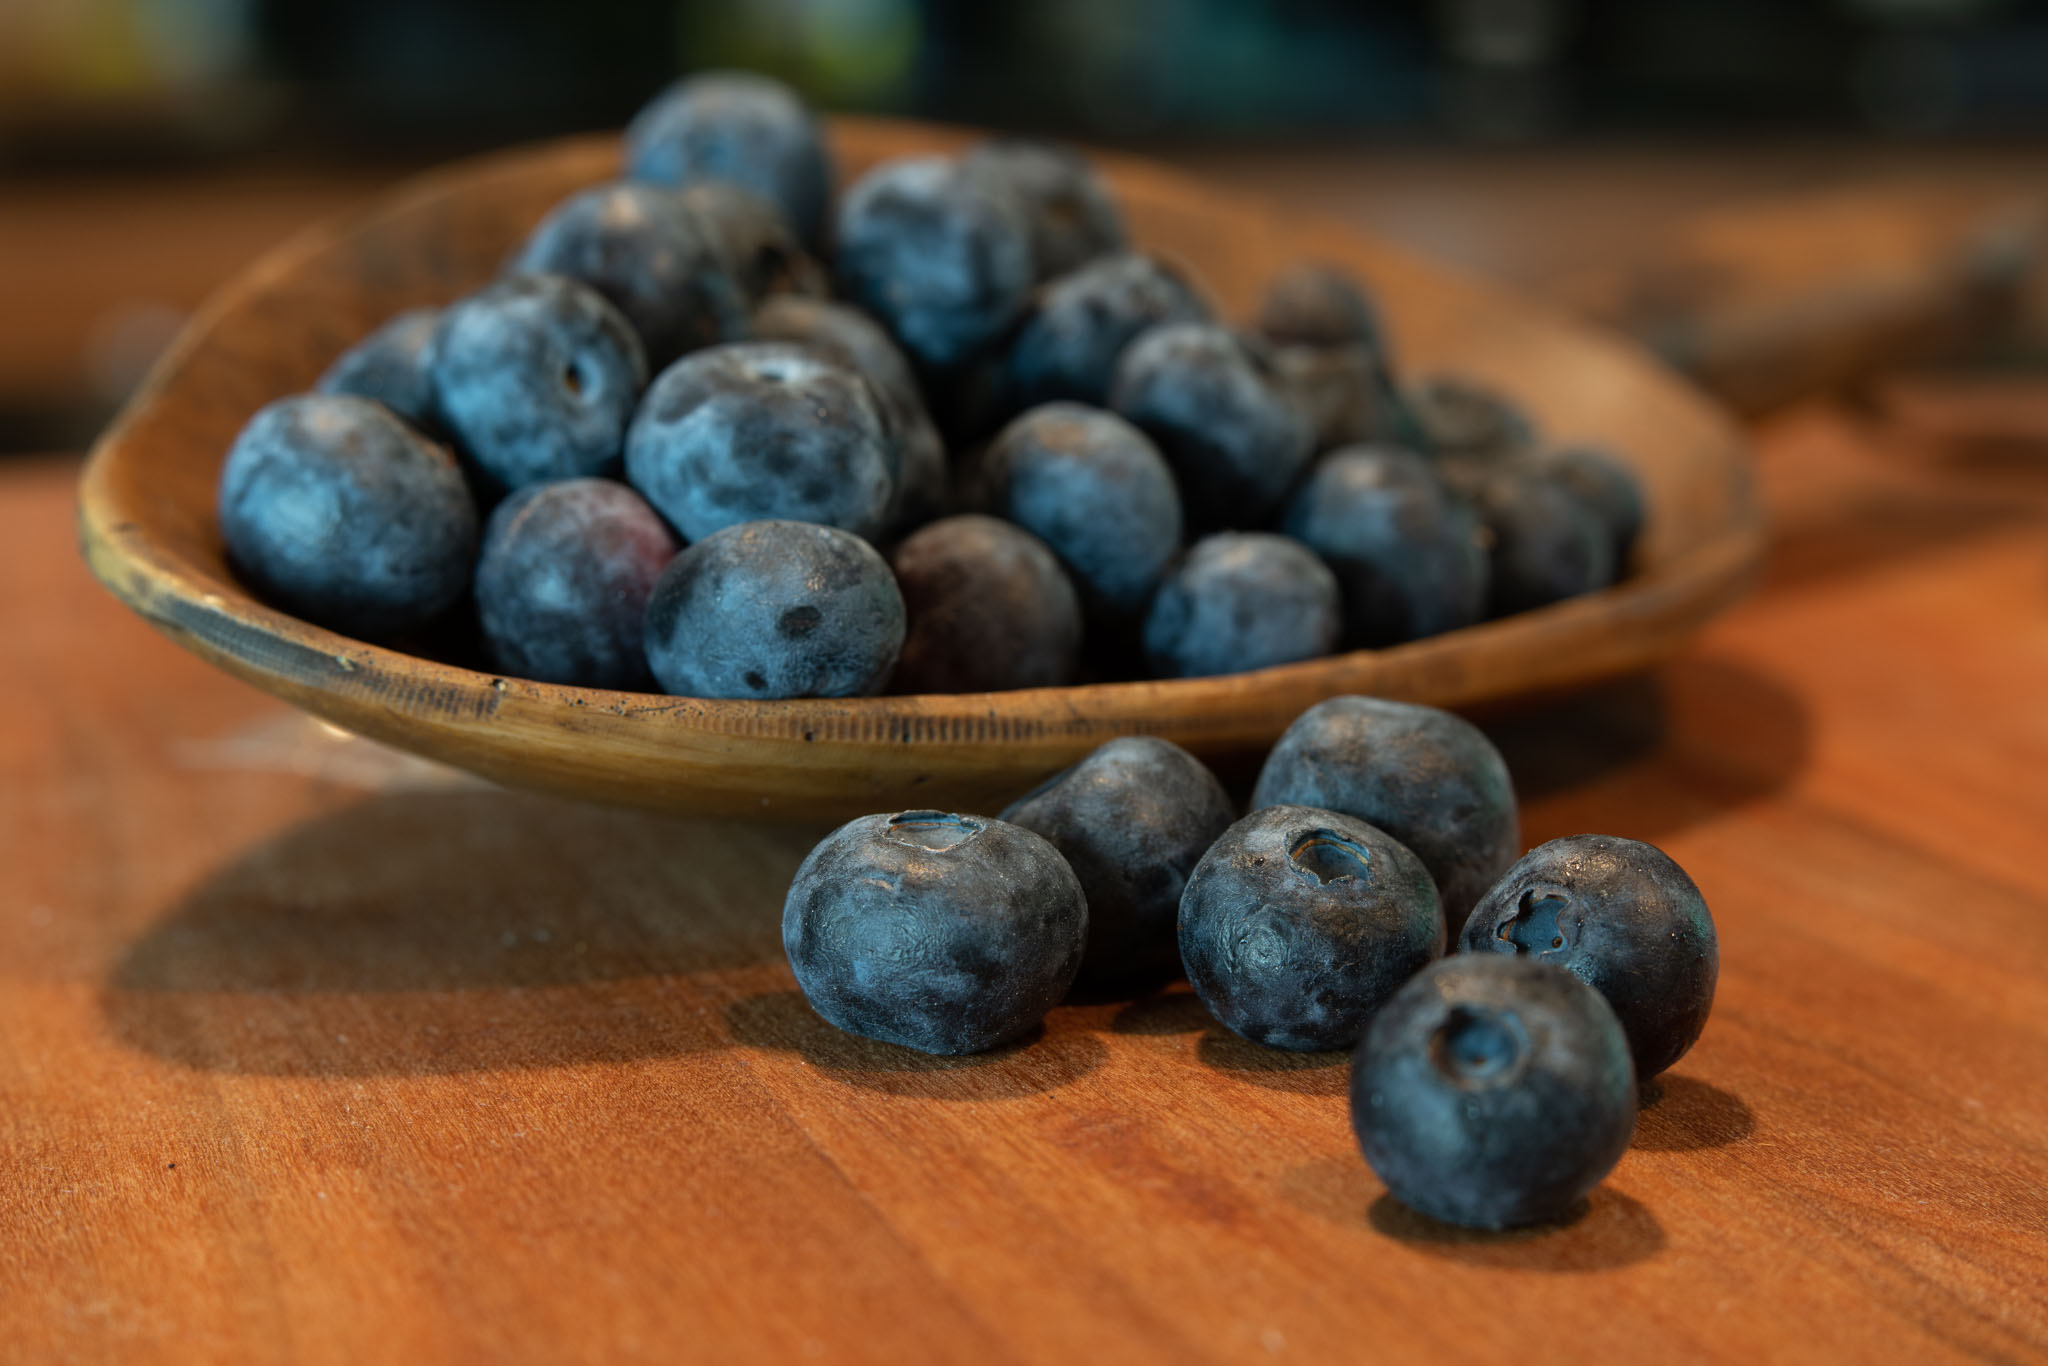 Blueberries with lensbaby